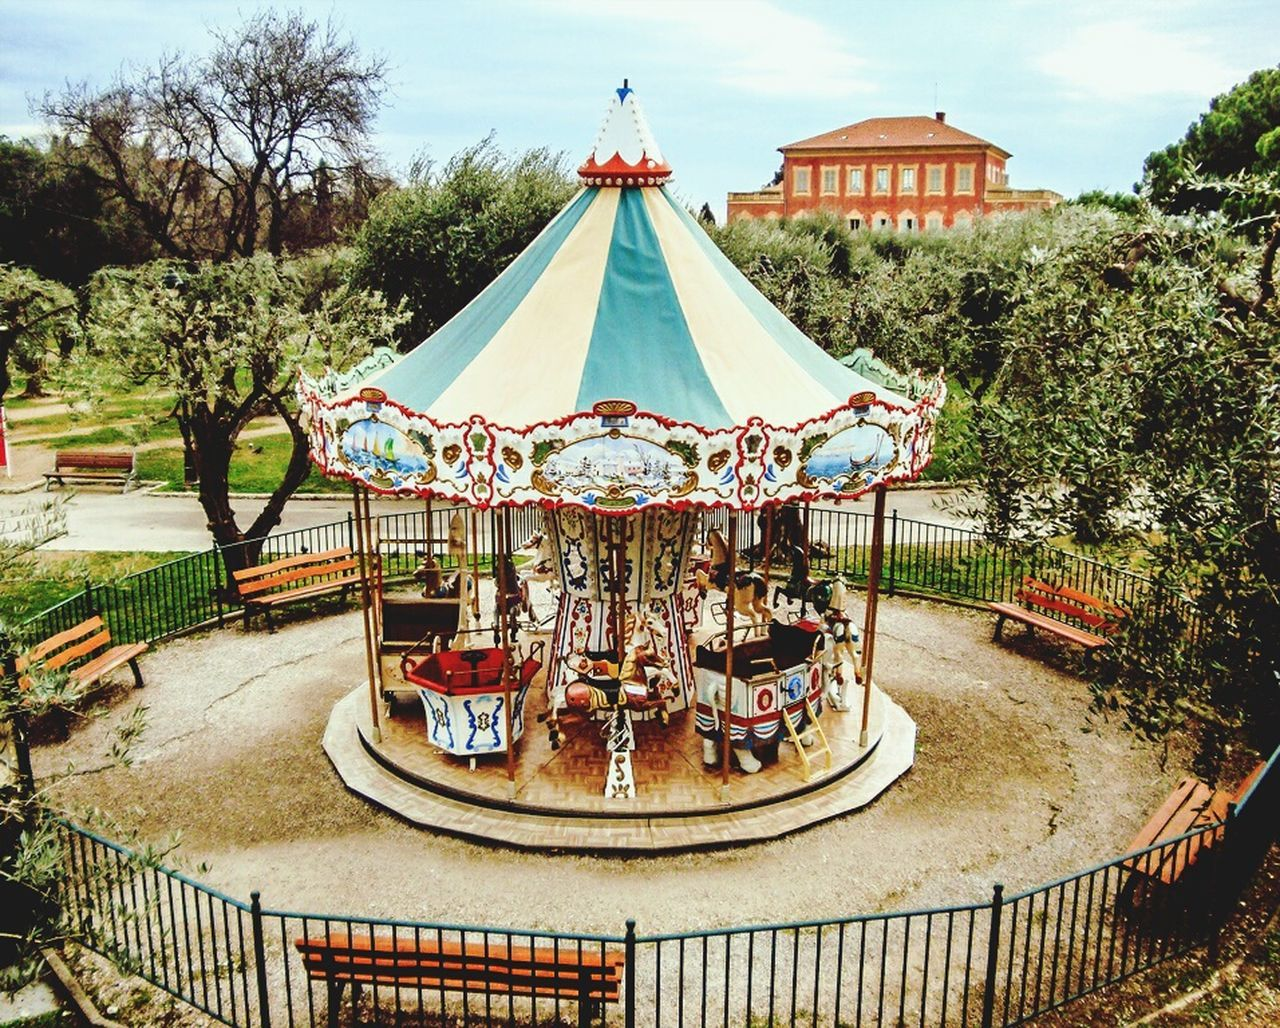 amusement park, arts culture and entertainment, carousel, amusement park ride, tree, outdoors, merry-go-round, leisure activity, day, no people, park - man made space, carousel horses, water, sky